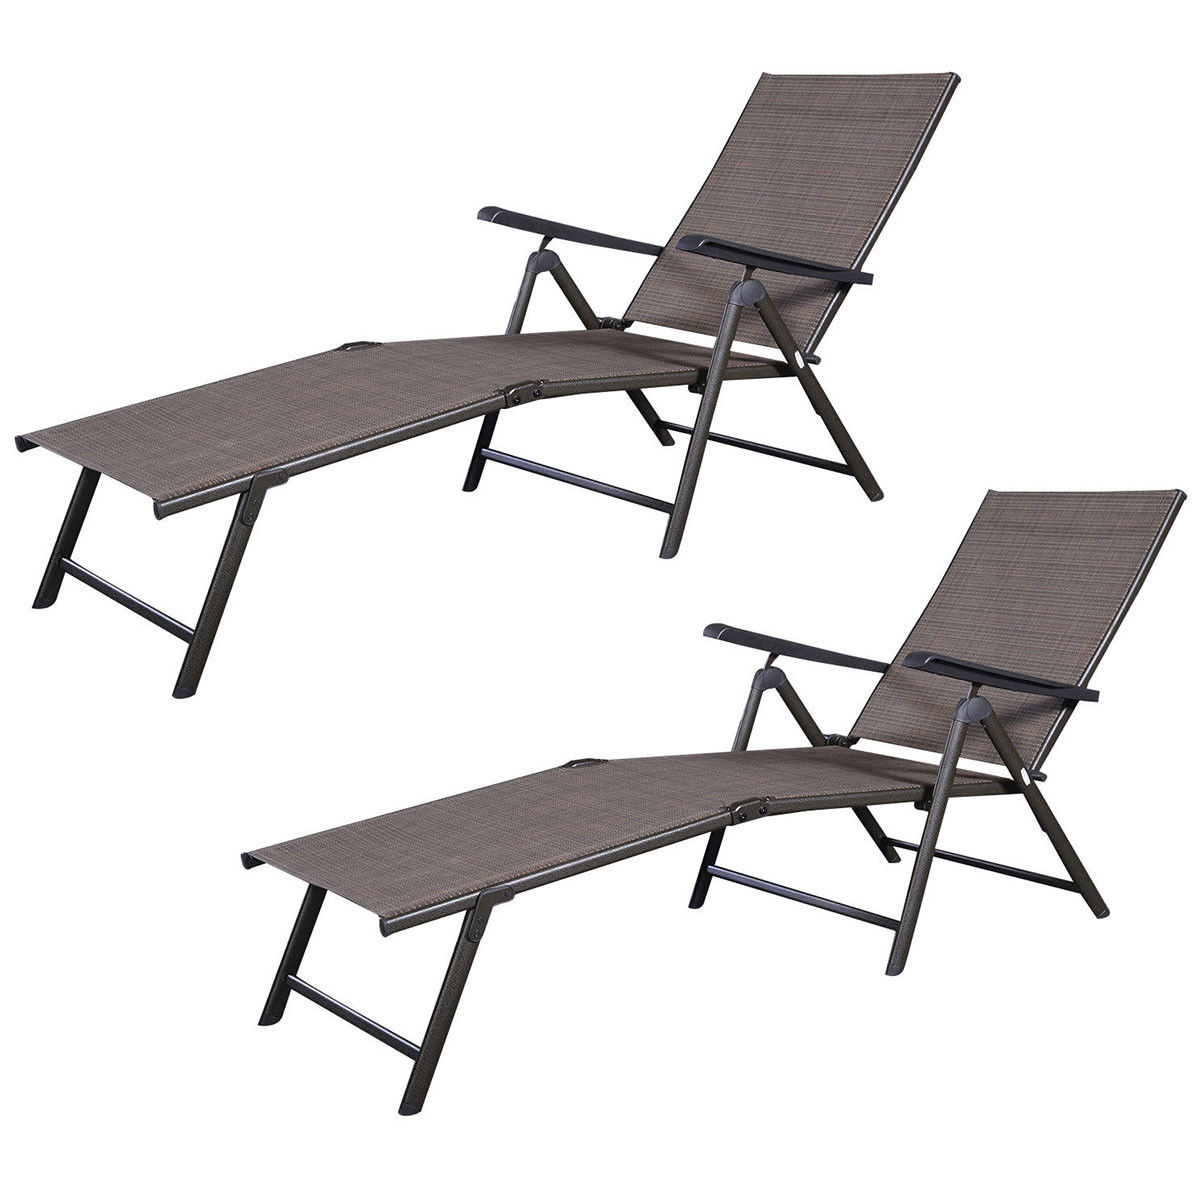 GHP 2-Pcs Steel & Textilene Adjustable Angle Back Rest Chaise Lounge Recliner Chairs